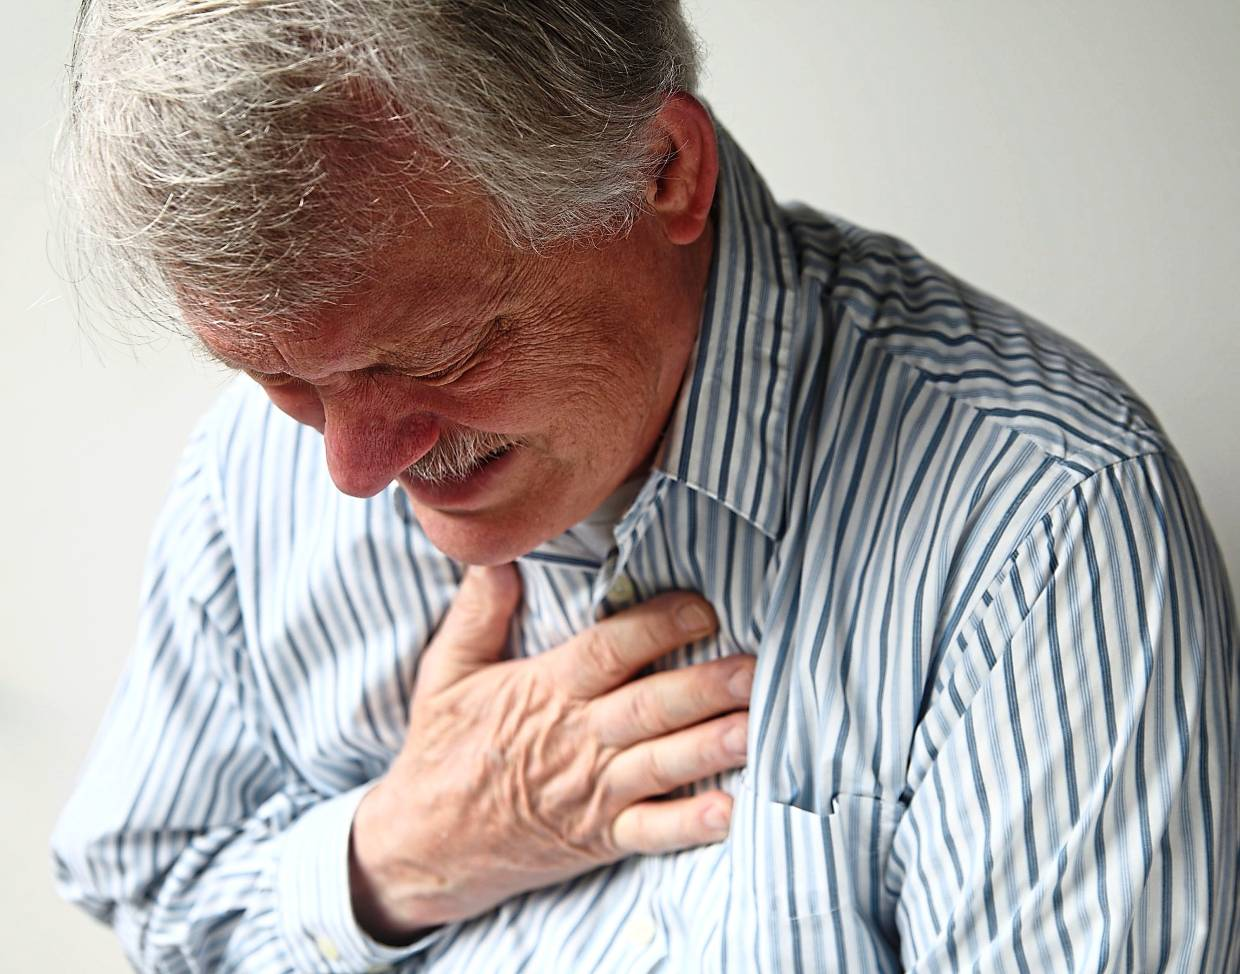 A heart attack is one of the possible serious consequences of catching the flu. — TNS